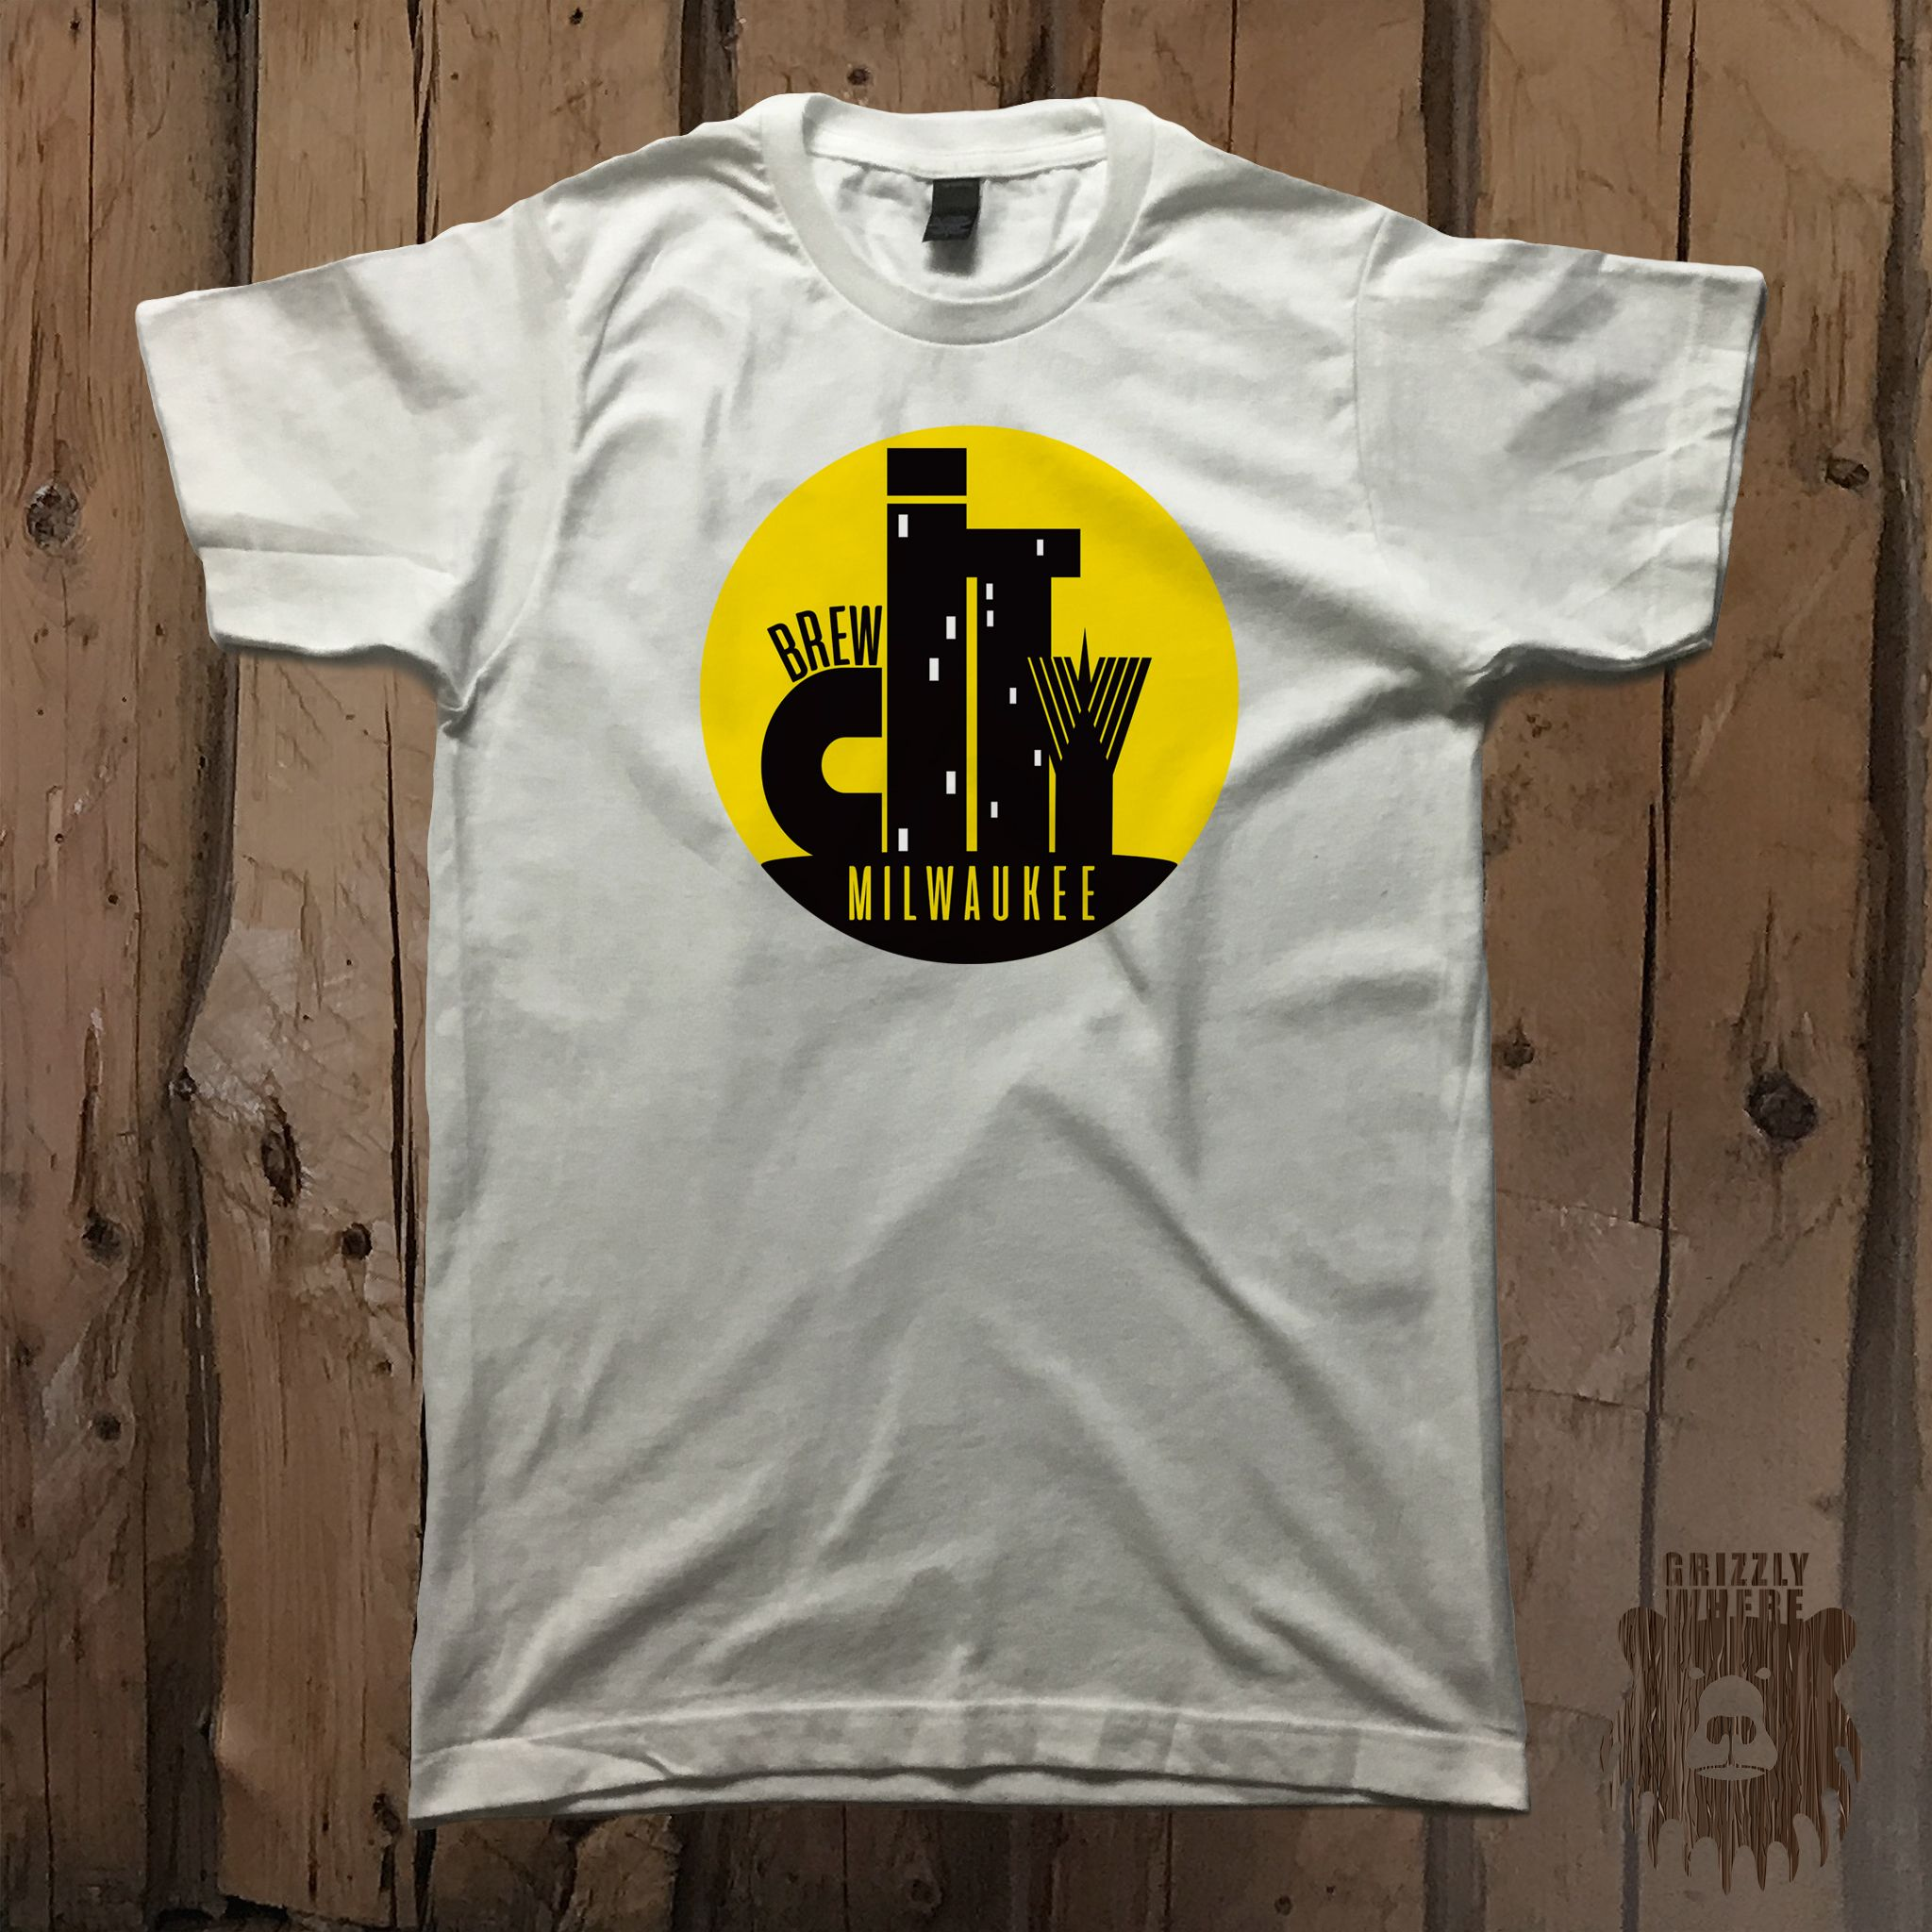 """Brew City Milwaukee"" Unisex Graphic Tee from Grizzly Where"